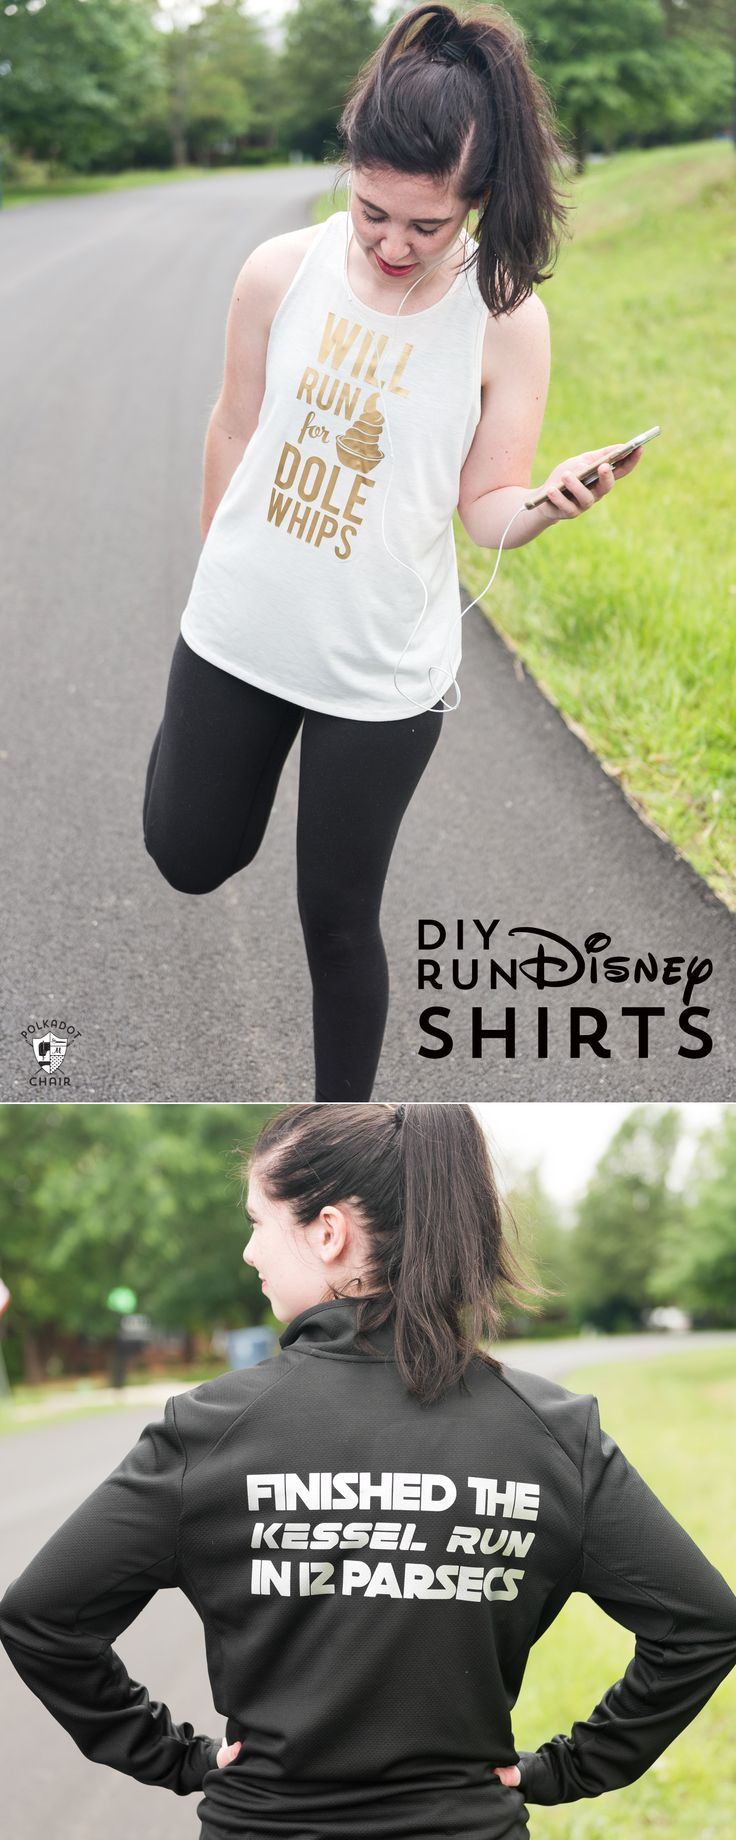 DIY Run Disney Costumes and shirt ideas, includes free cricut SVG files to make ...